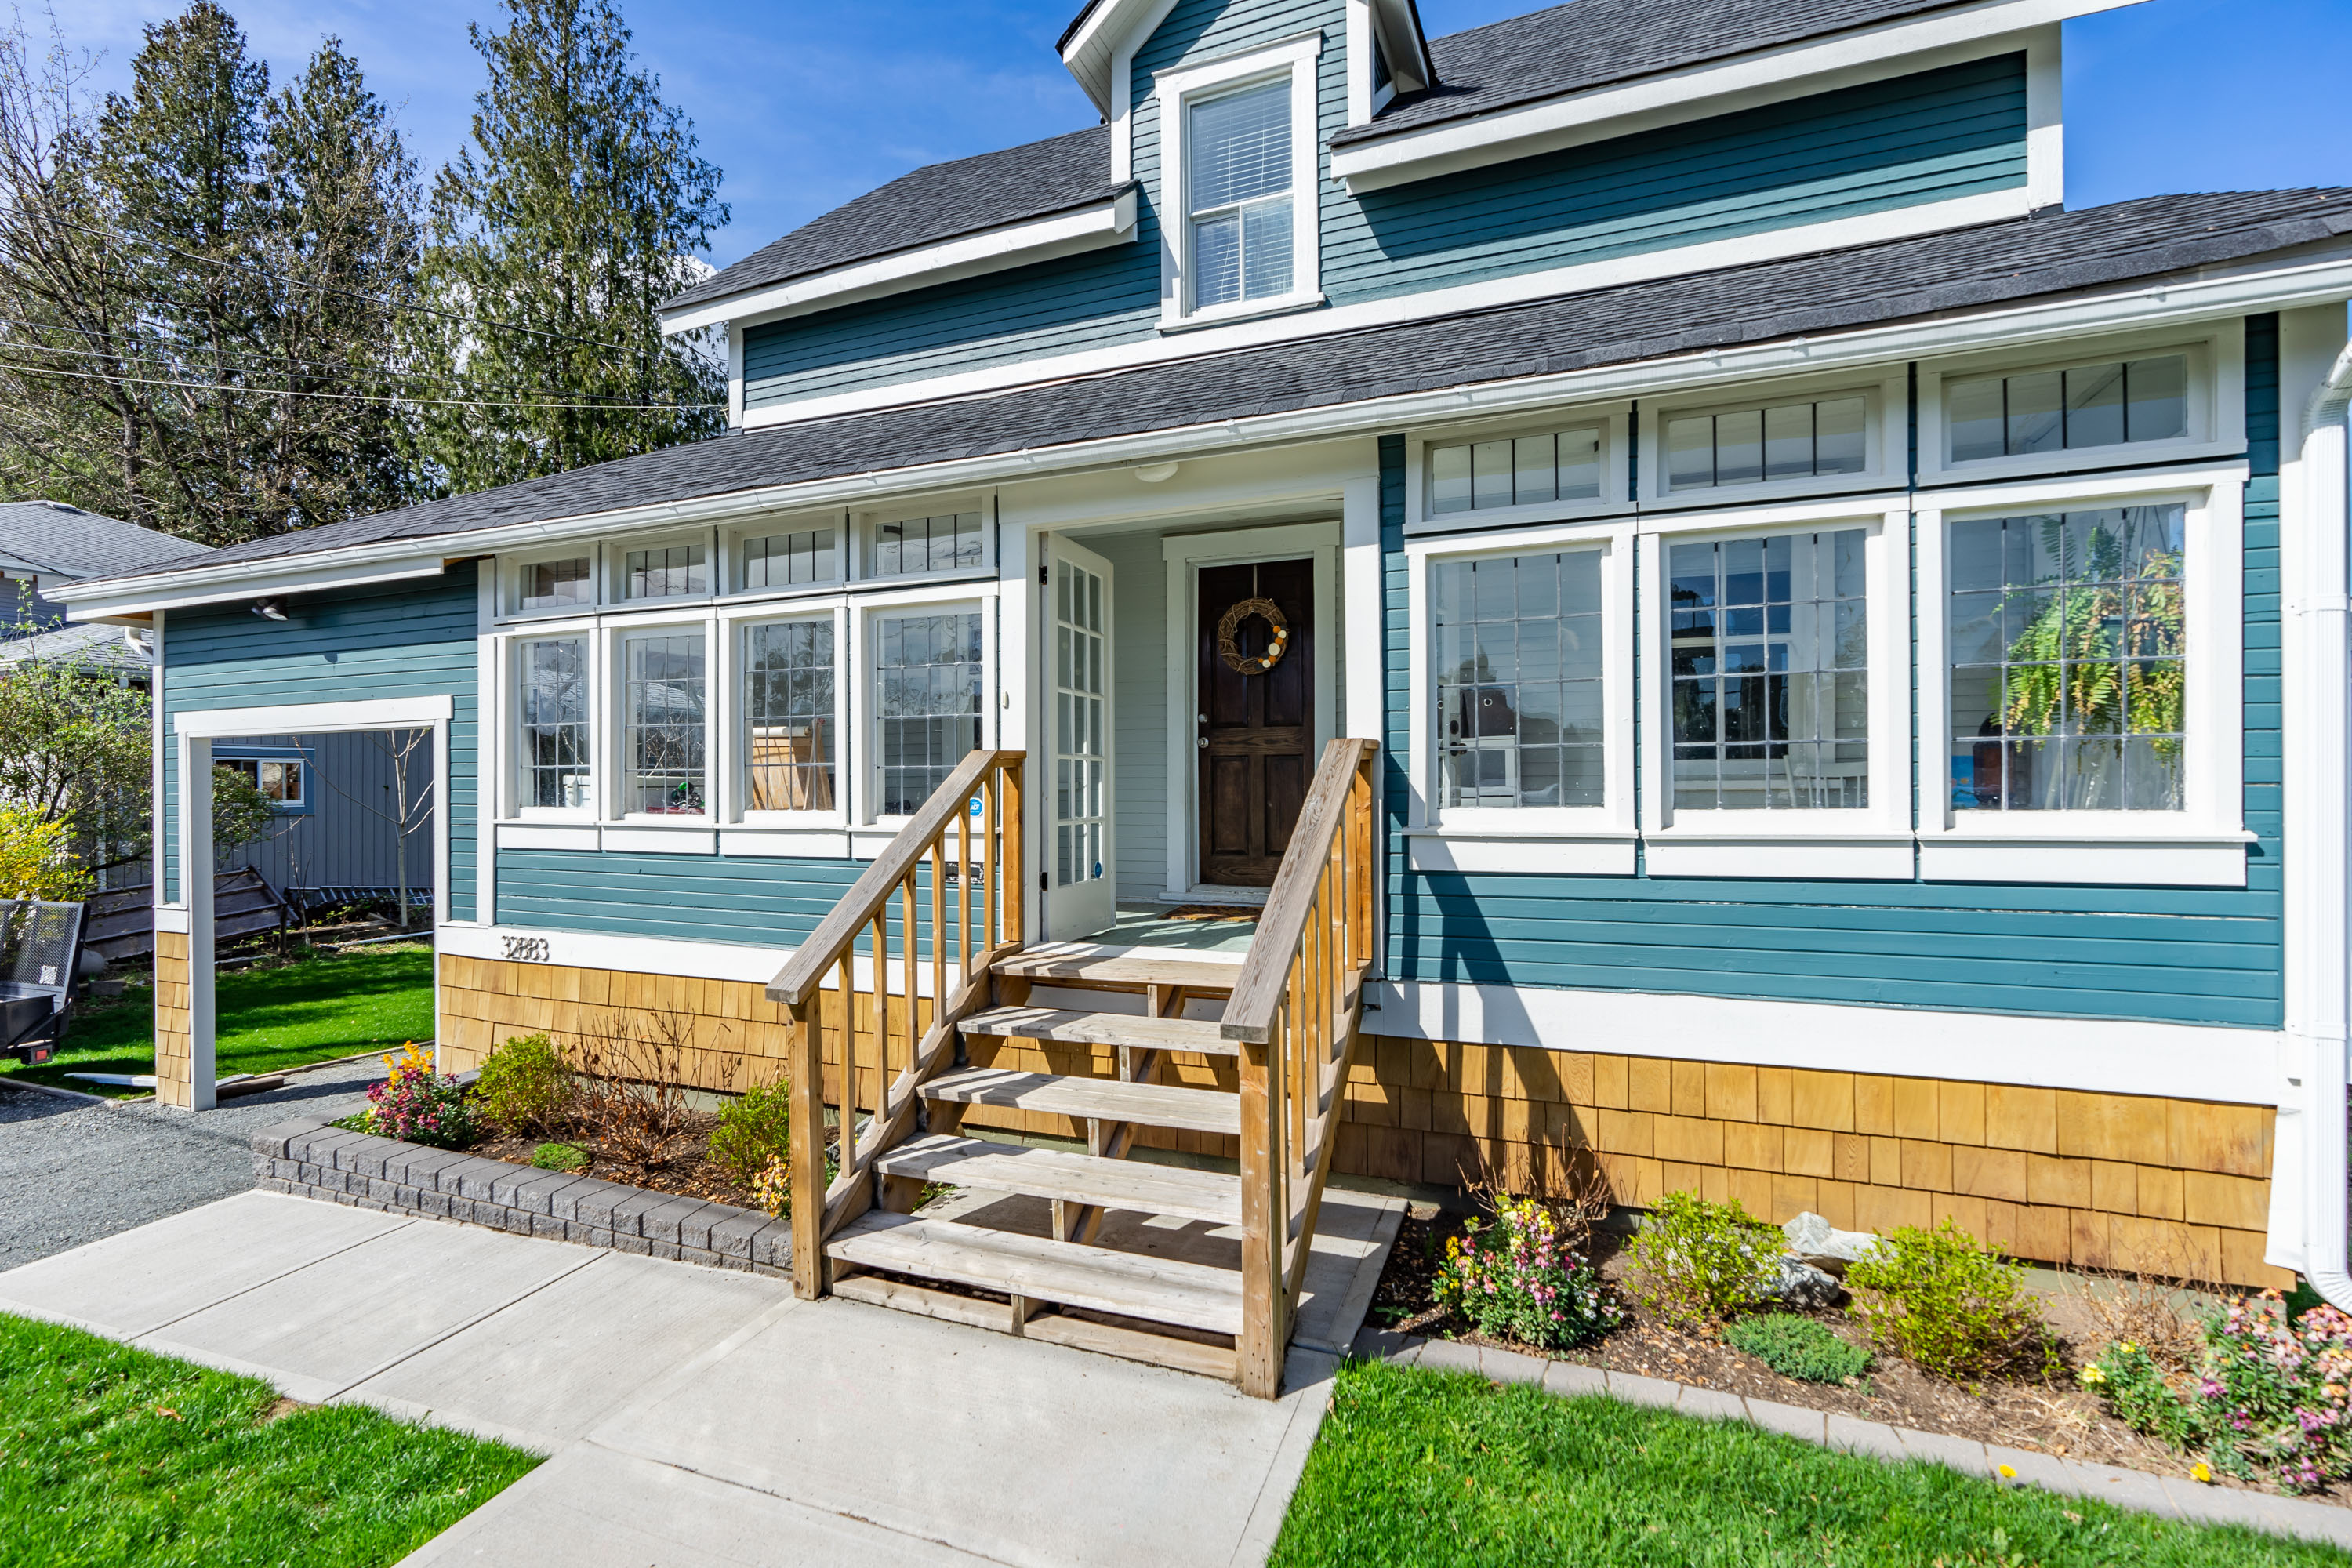 Character Home Filled with Charm in Mission